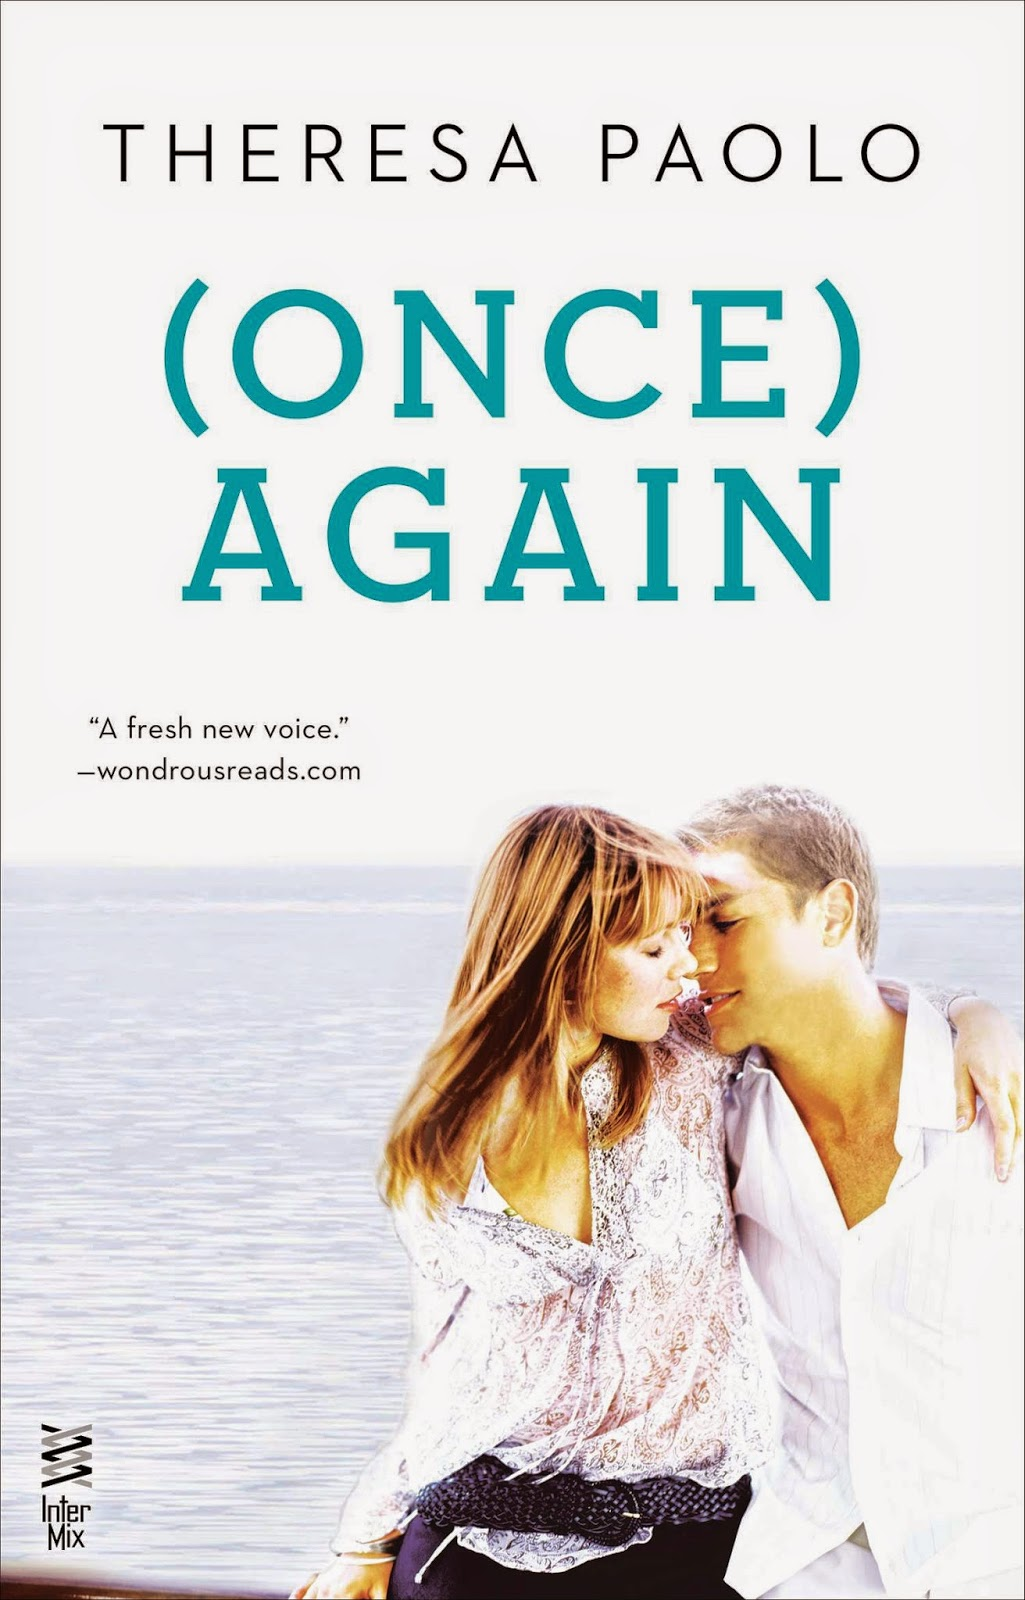 http://www.amazon.com/Once-Again-Theresa-Paolo-ebook/dp/B00I8RB0PG/ref=sr_1_1?ie=UTF8&qid=1403489616&sr=8-1&keywords=theresa+paolo